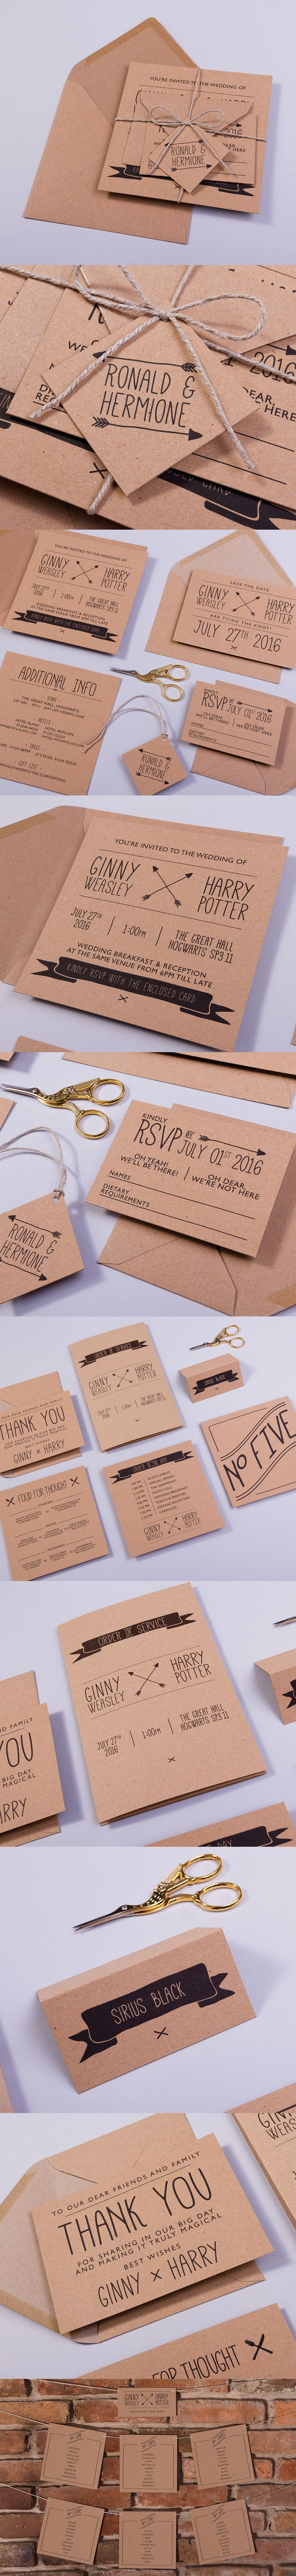 THE BURROW, loosely based on a Harry Potter theme, this wedding invitation and stationery collection captures all of the charm of the Weasley family home 'The Burrow', with a rustic feel. Perfect for a shabby chic, whimsical or rustic wedding.